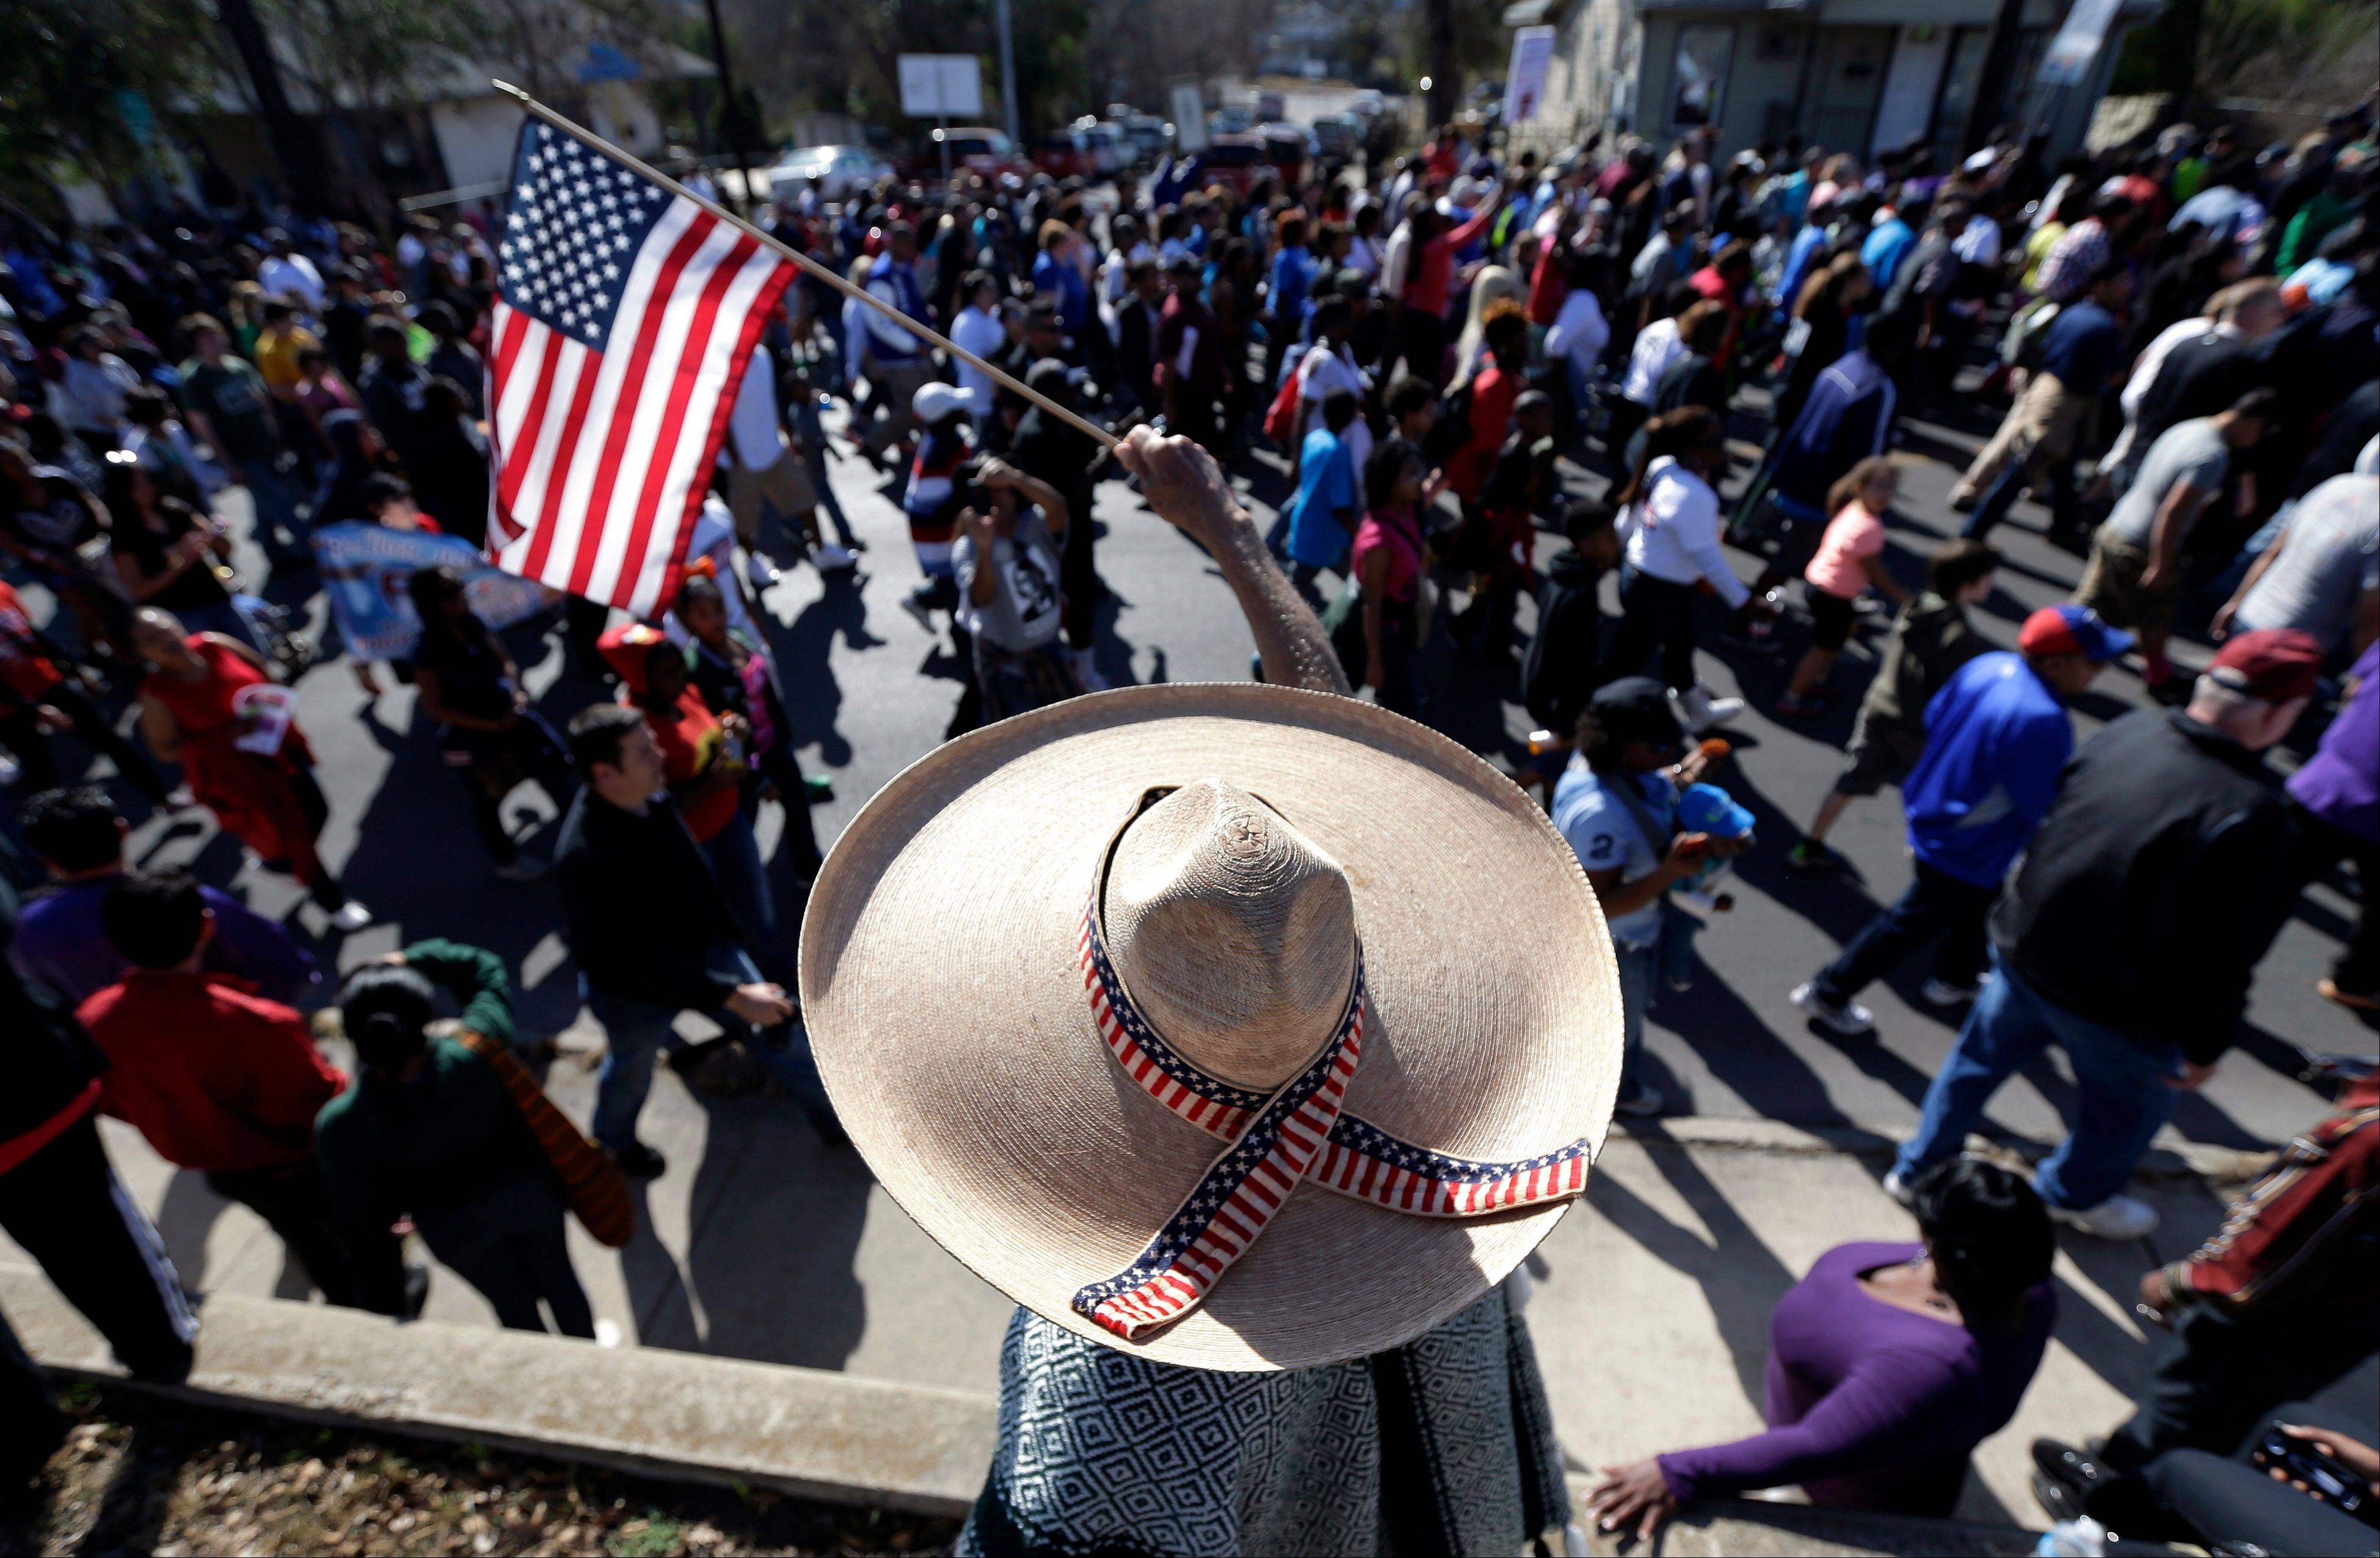 Rudy Garza waves a U.S. flag as a march honoring Martin Luther King Jr. passes, Monday, Jan. 20, 2014, in San Antonio.